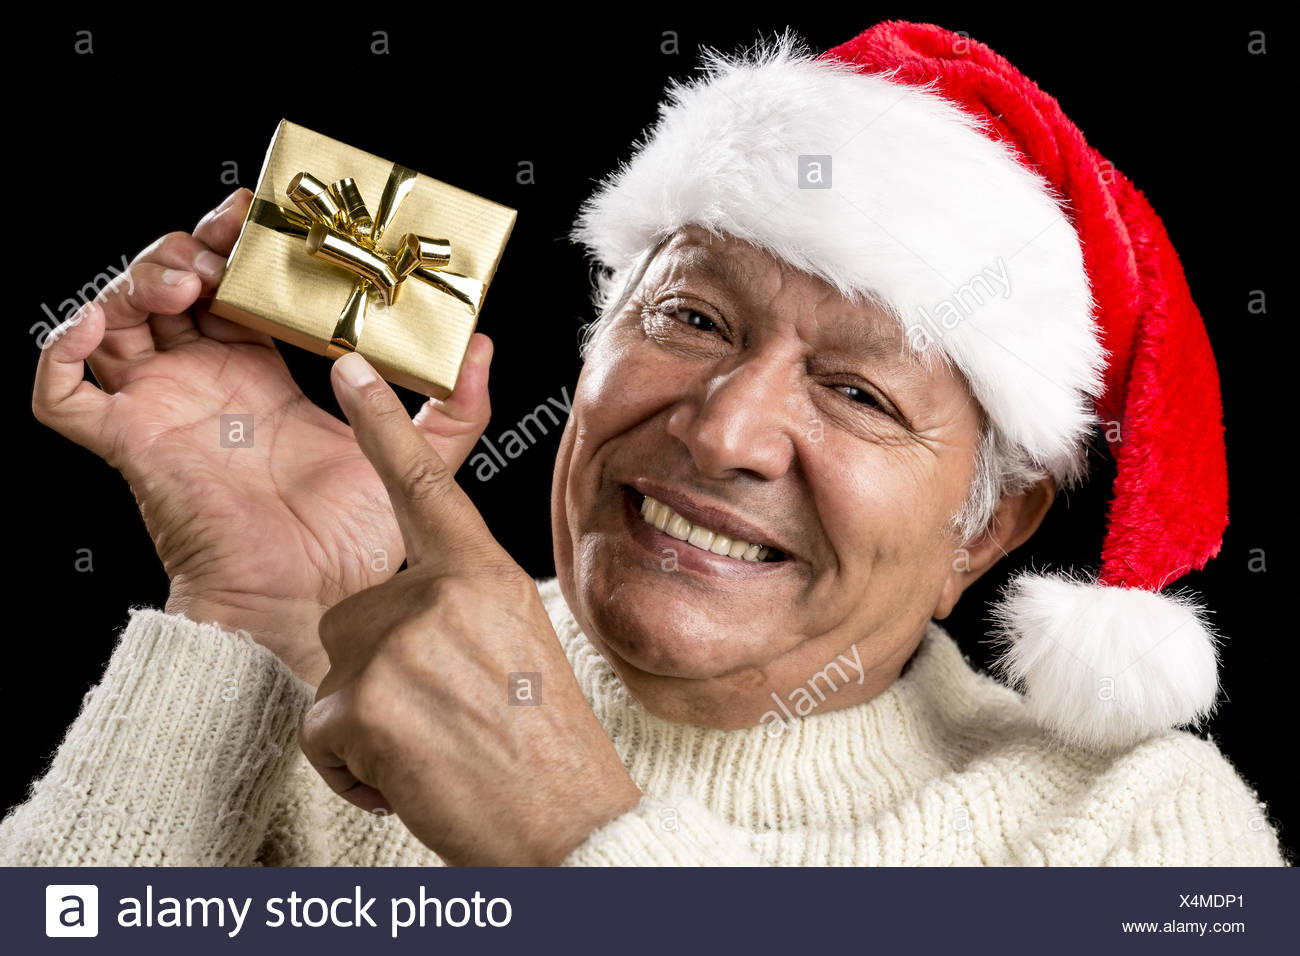 Playful Male Pensioner Pointing At Golden Gift - Stock Image